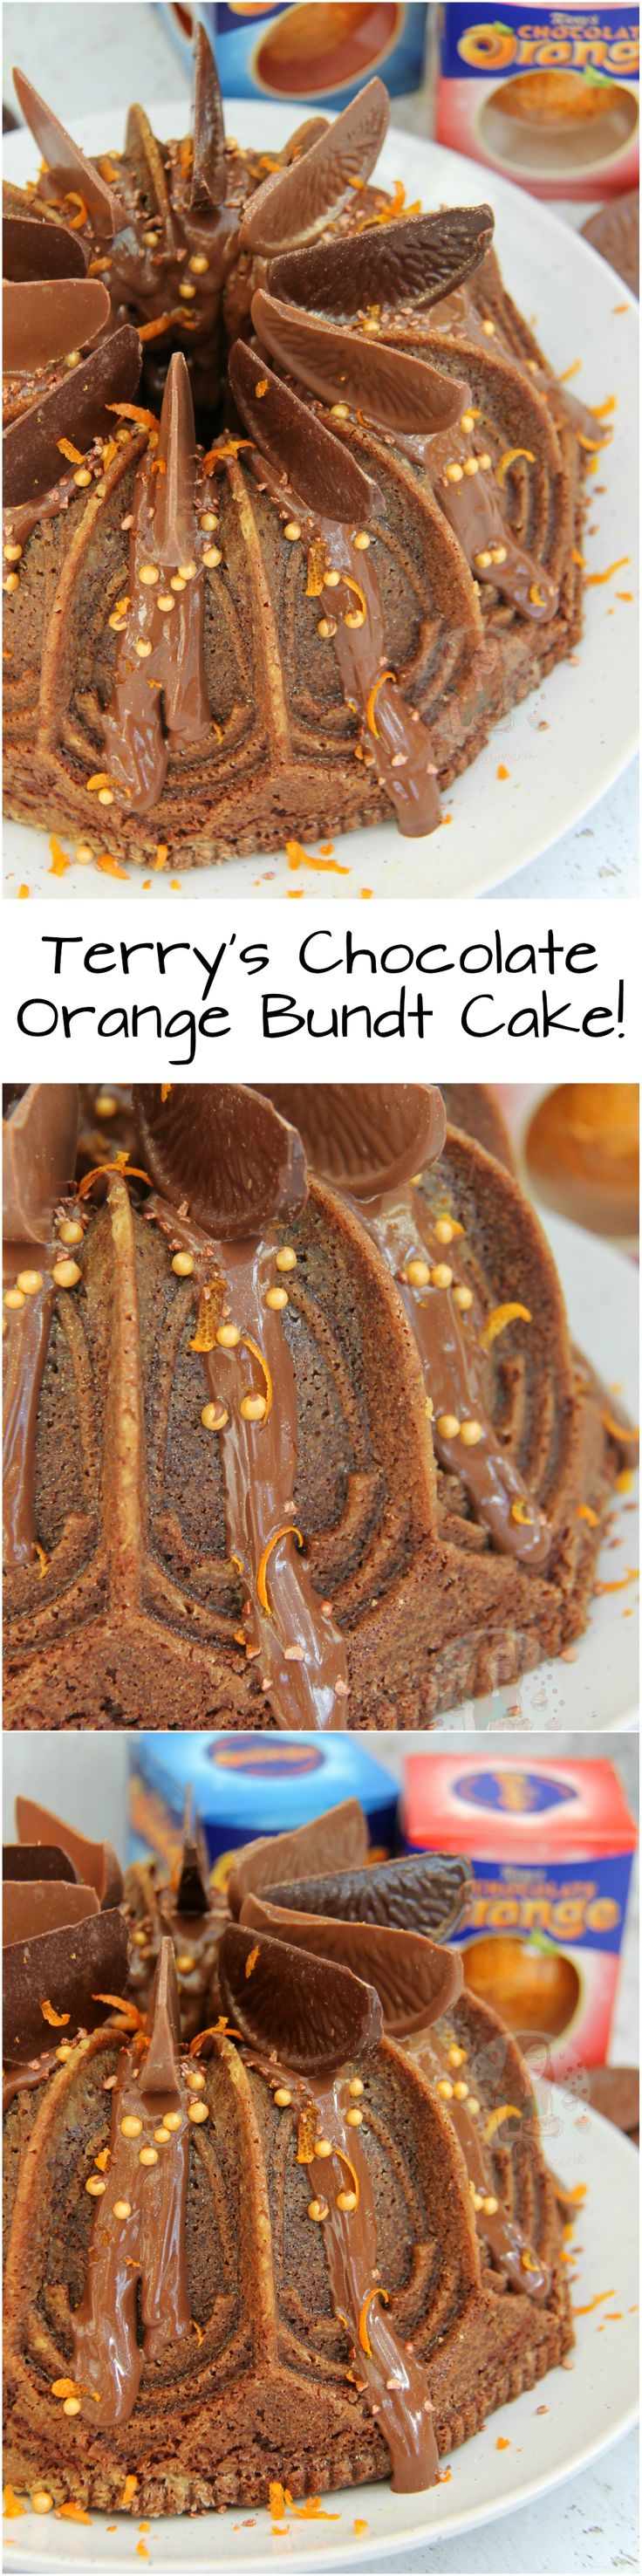 Terry's Chocolate Orange Bundt Cake!! Chocolate & Orange Zest Bundt Cake with Chocolate Orange Drizzle, and a dash more of Terry's Chocolate Orange!